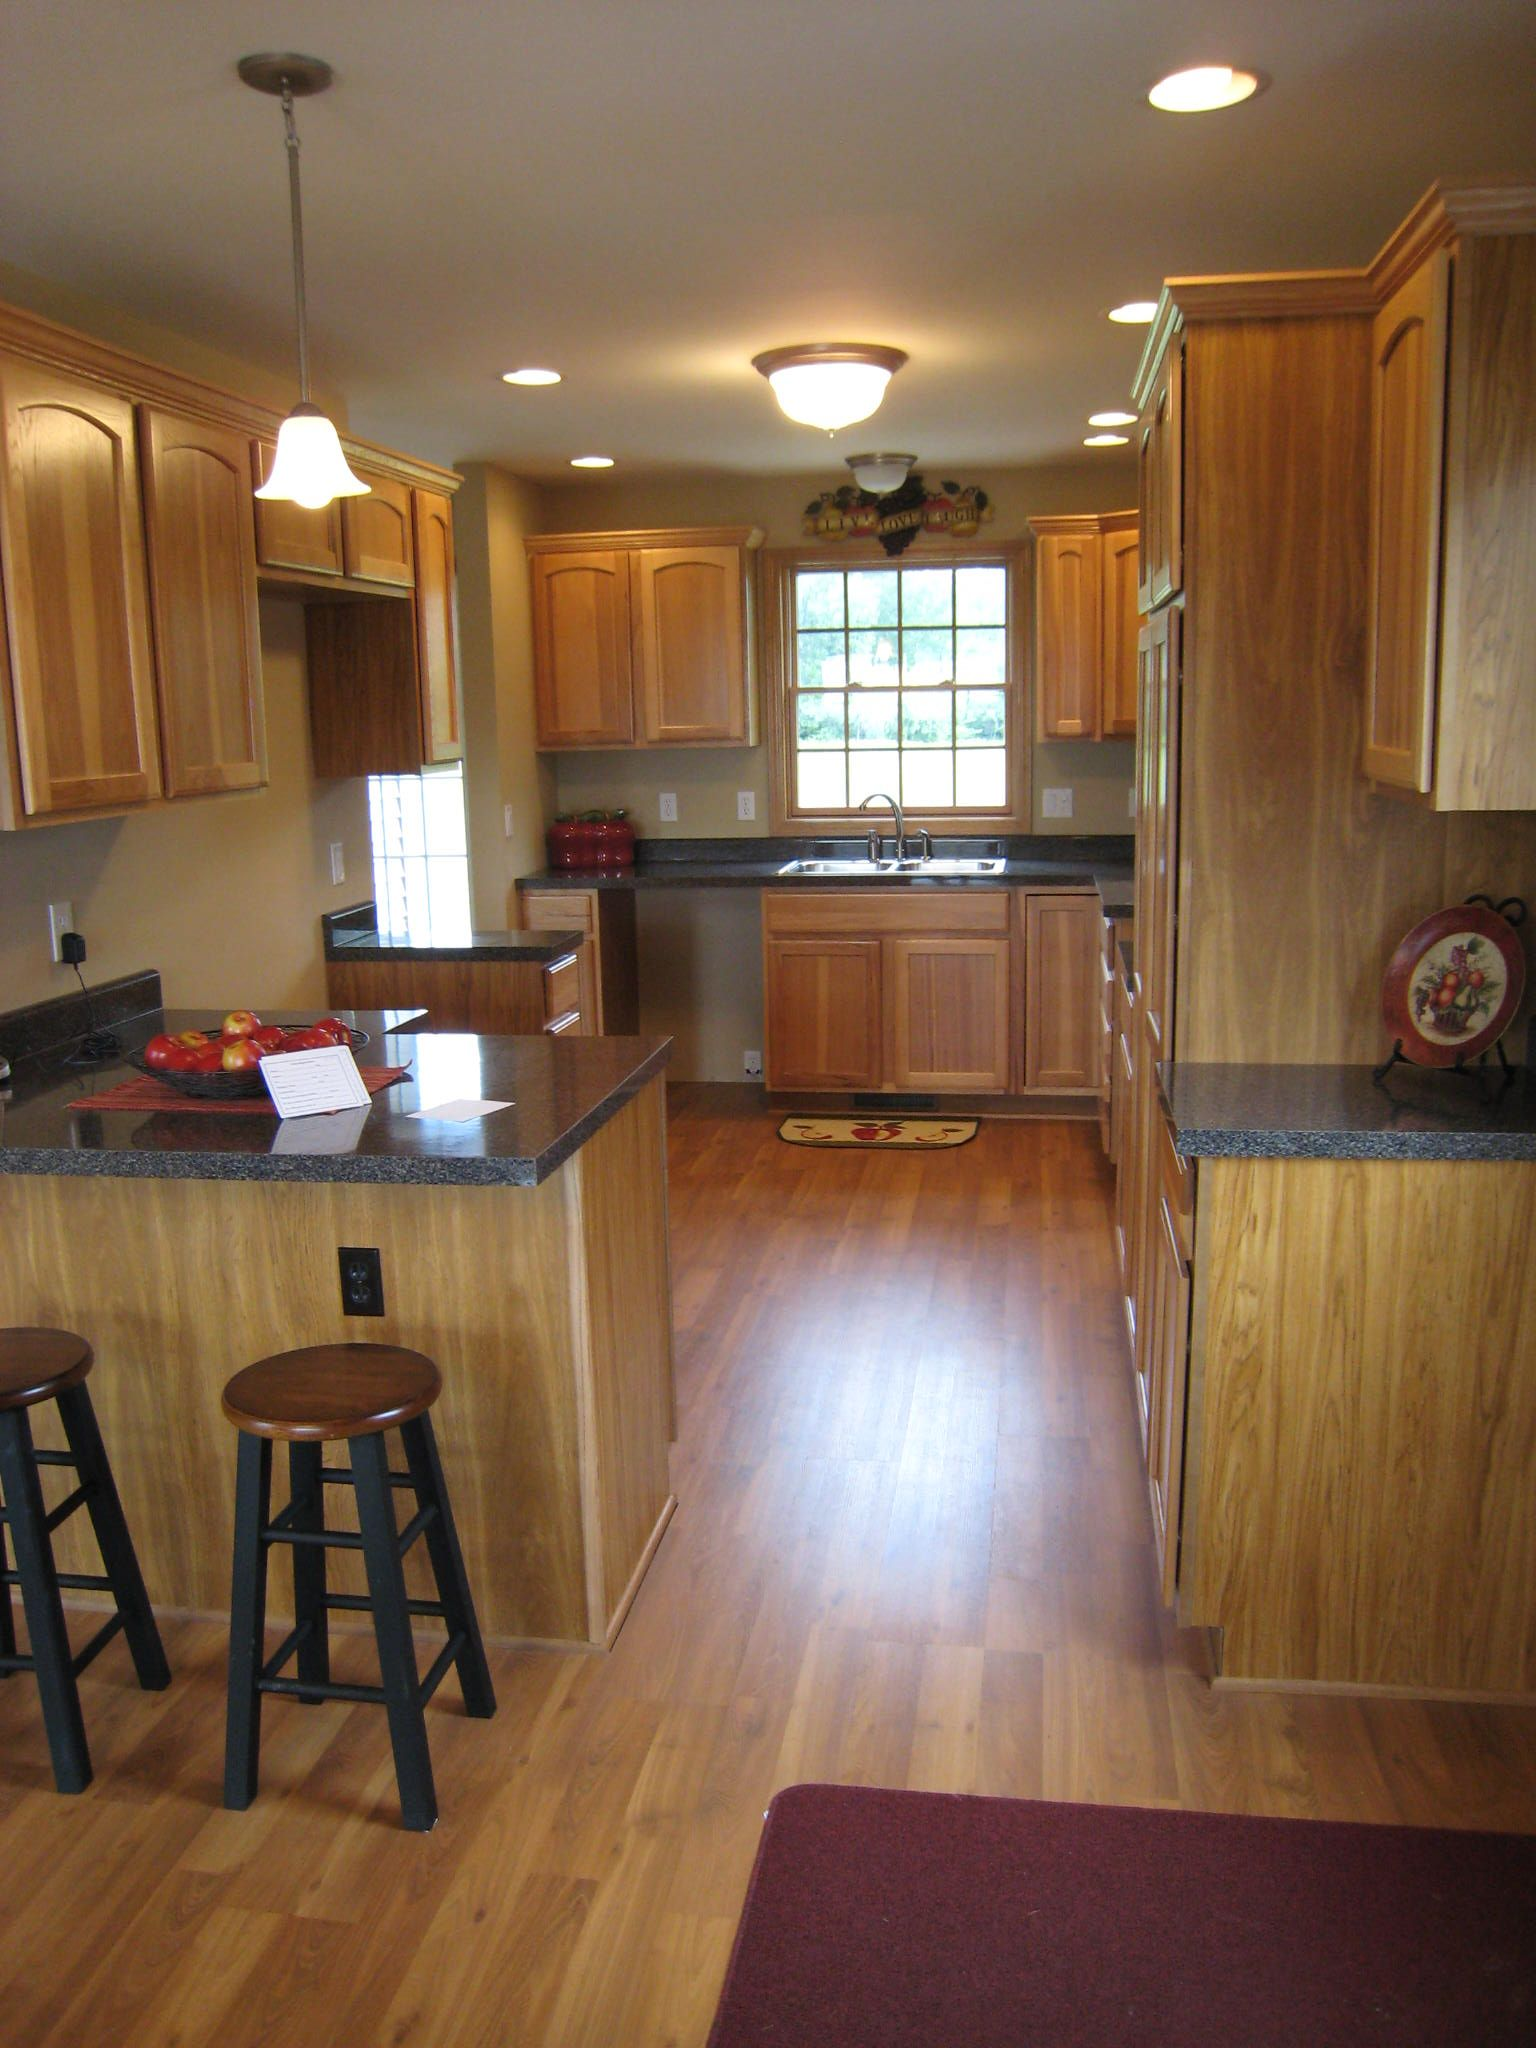 Delicieux Modular Home Kitchen With Merillat Cabinets. This Home Is Located In  Northern Michigan.